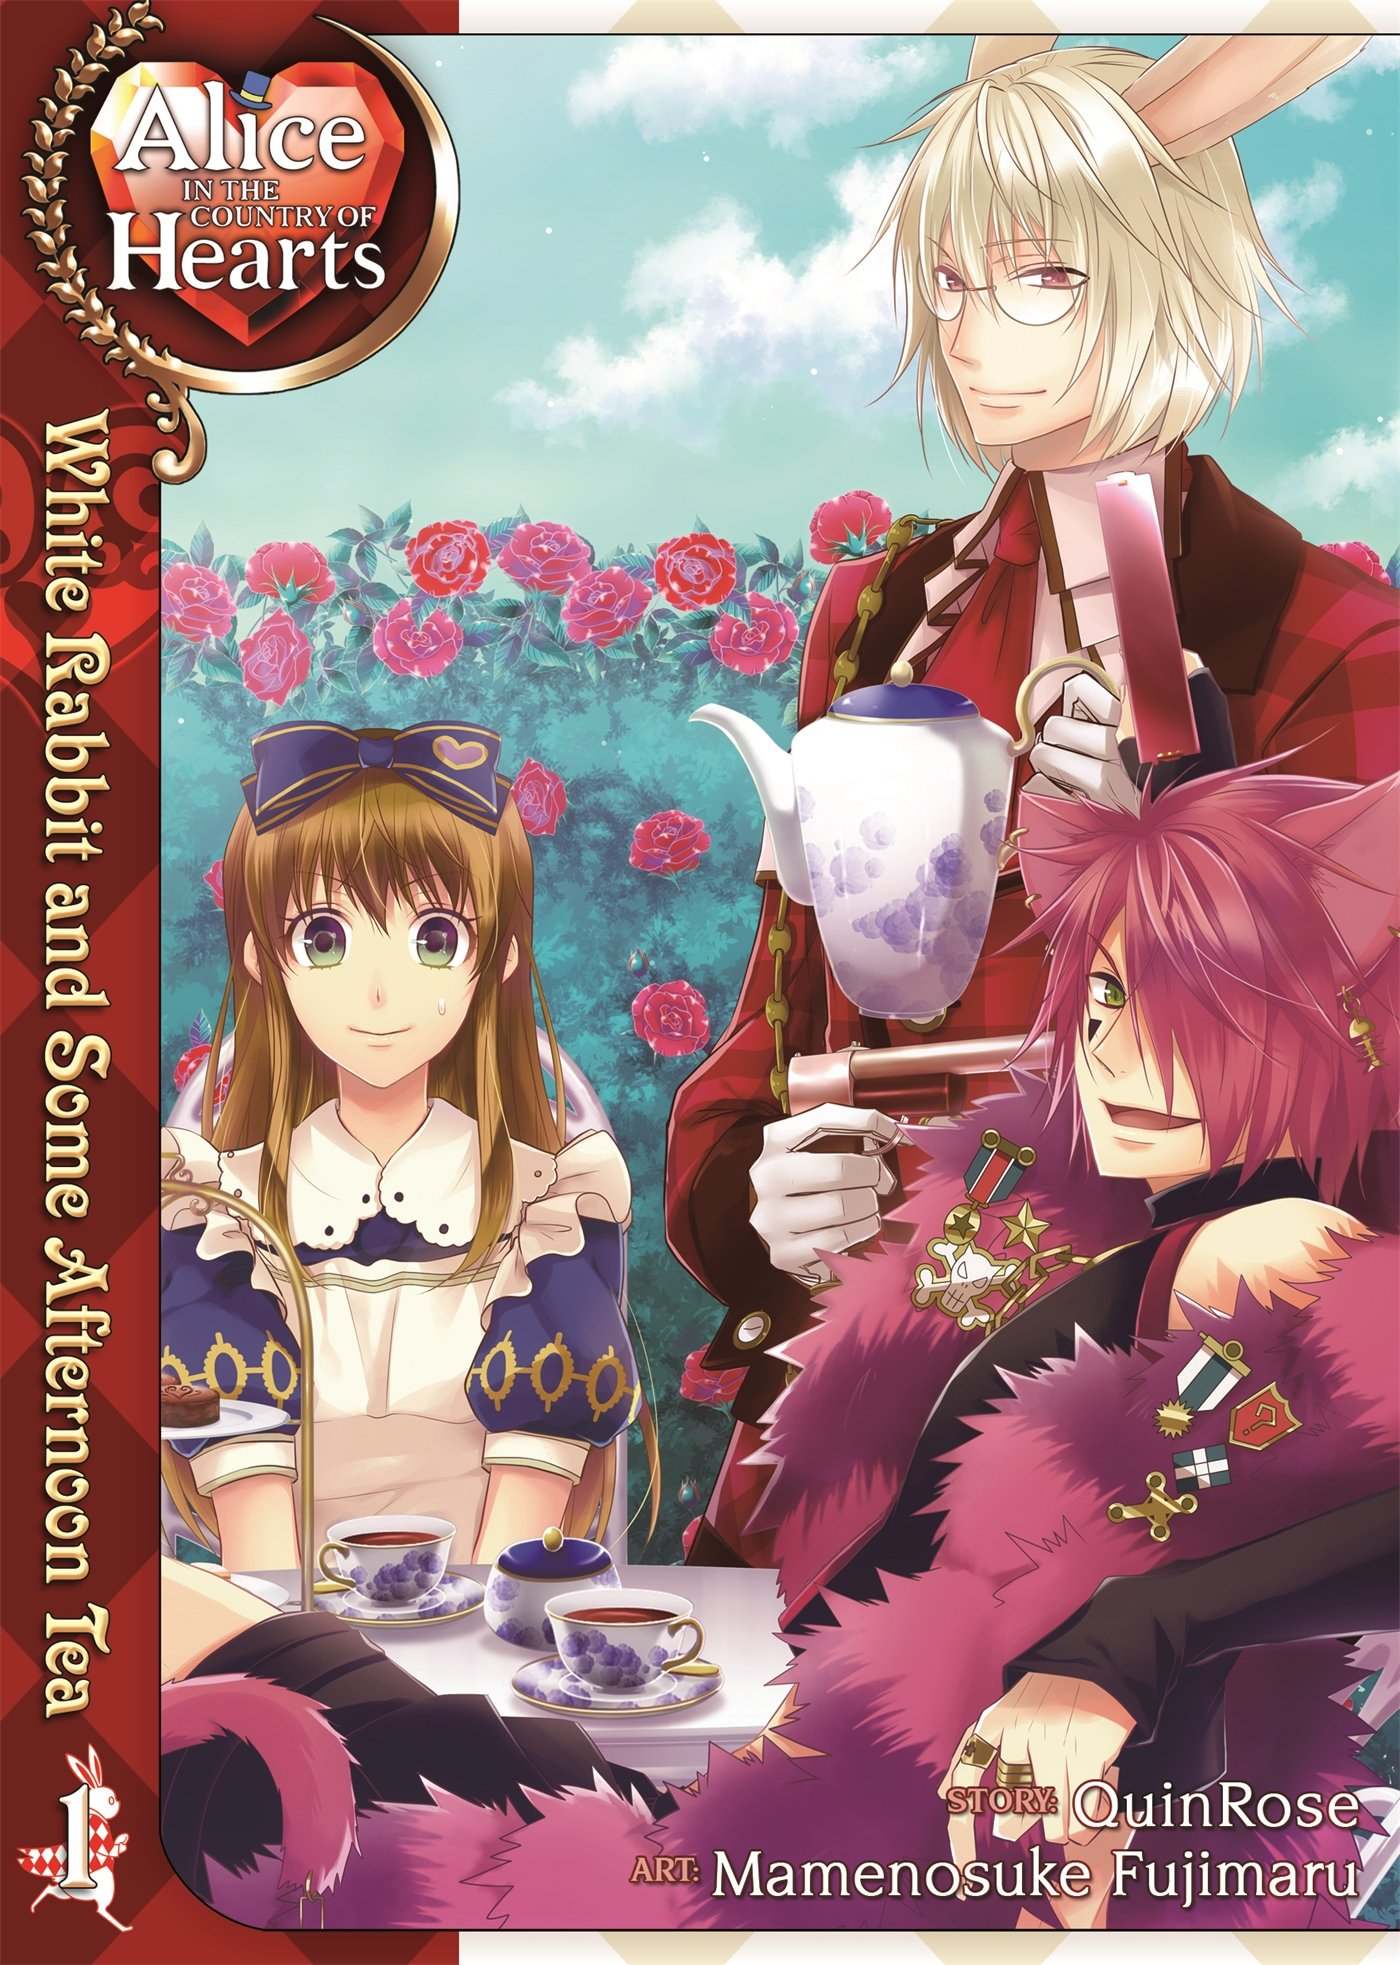 Alice in the Country of Hearts: White Rabbit and Some Afternoon Tea, Vol. 1 by Seven Seas